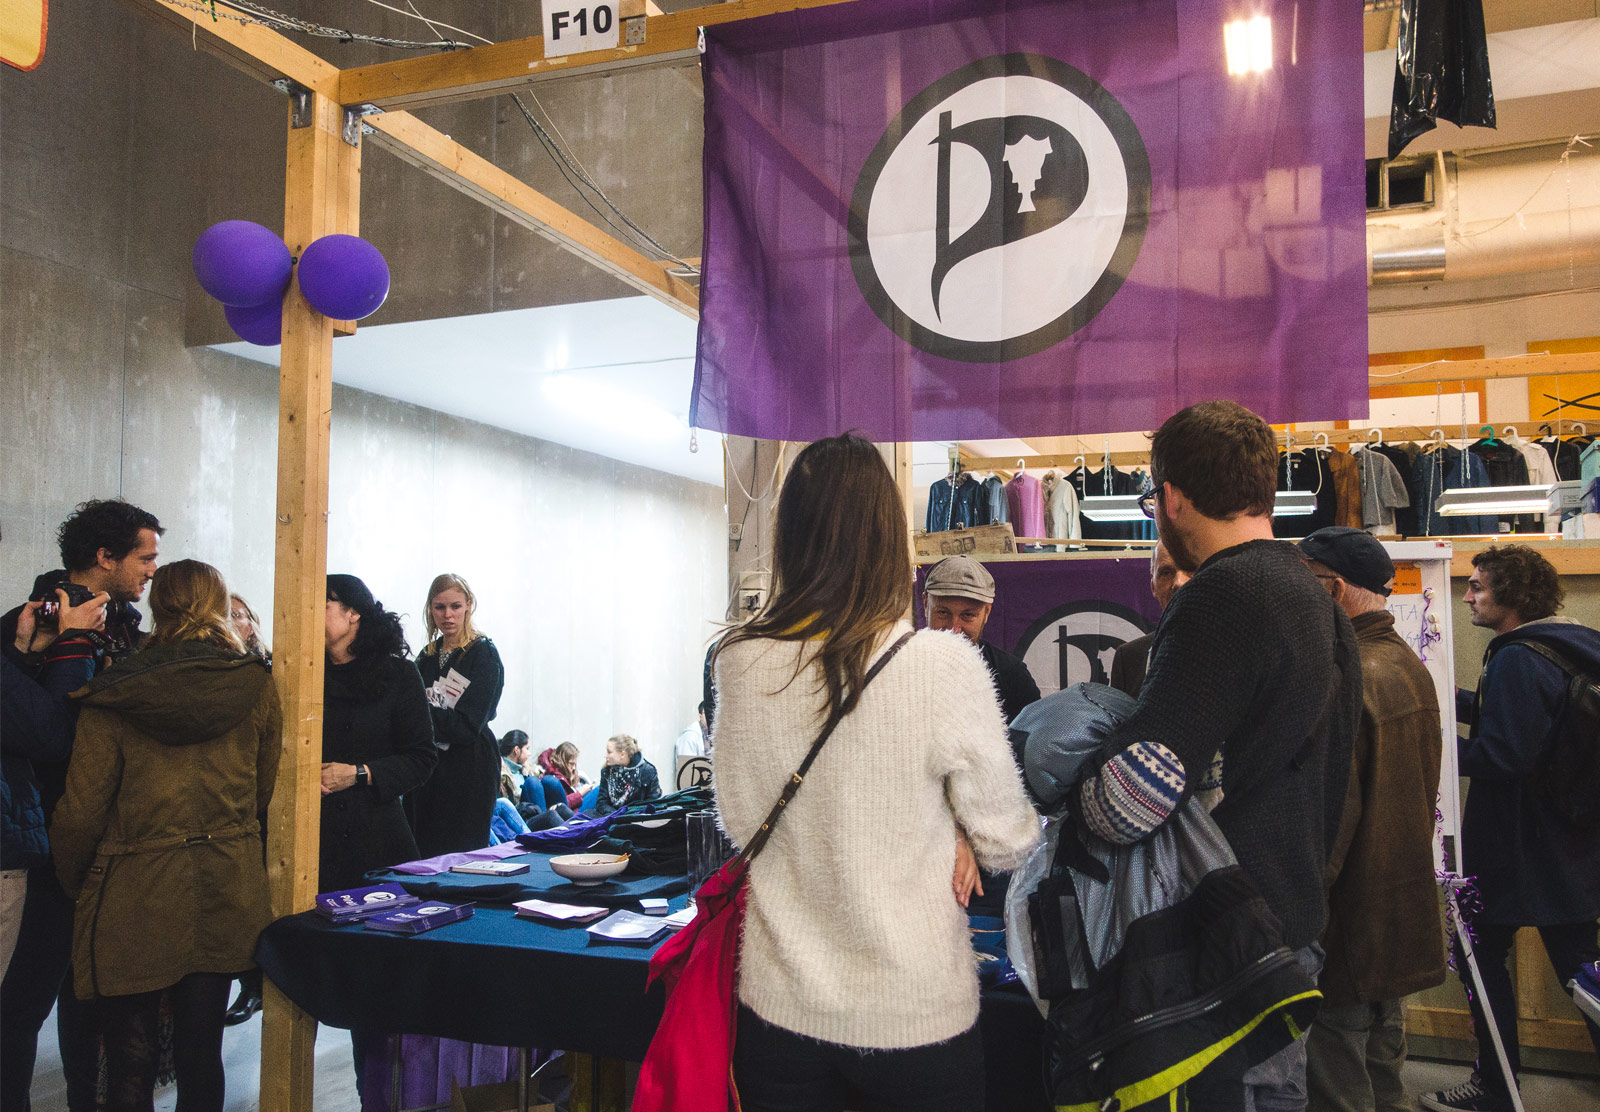 Pirate party booth and flag